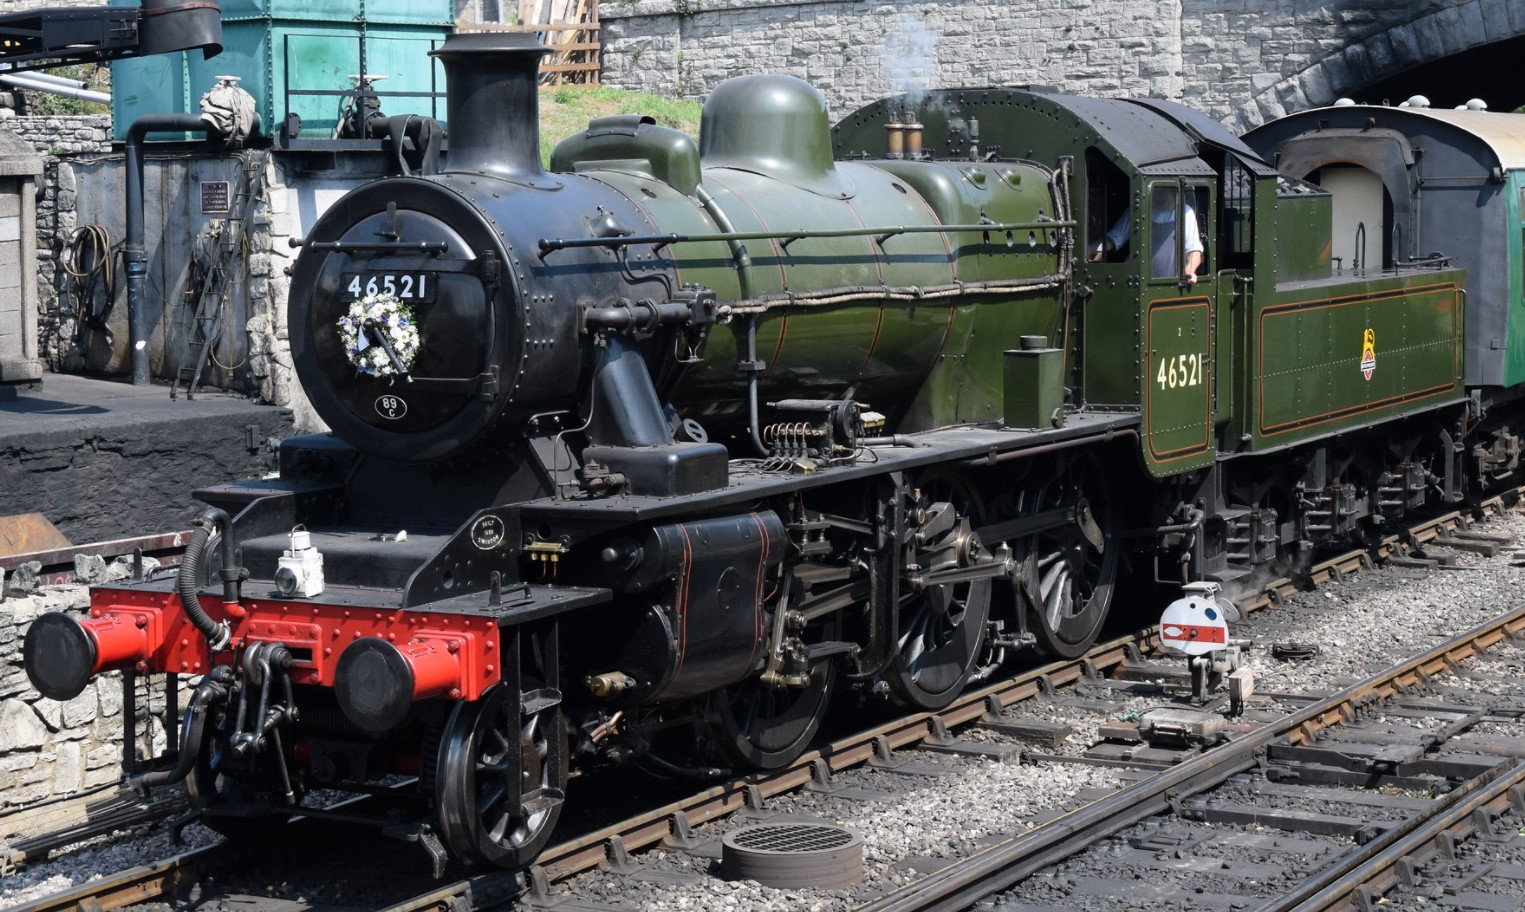 46521 at Swanage in August 2019. ©Hugh Llewelyn